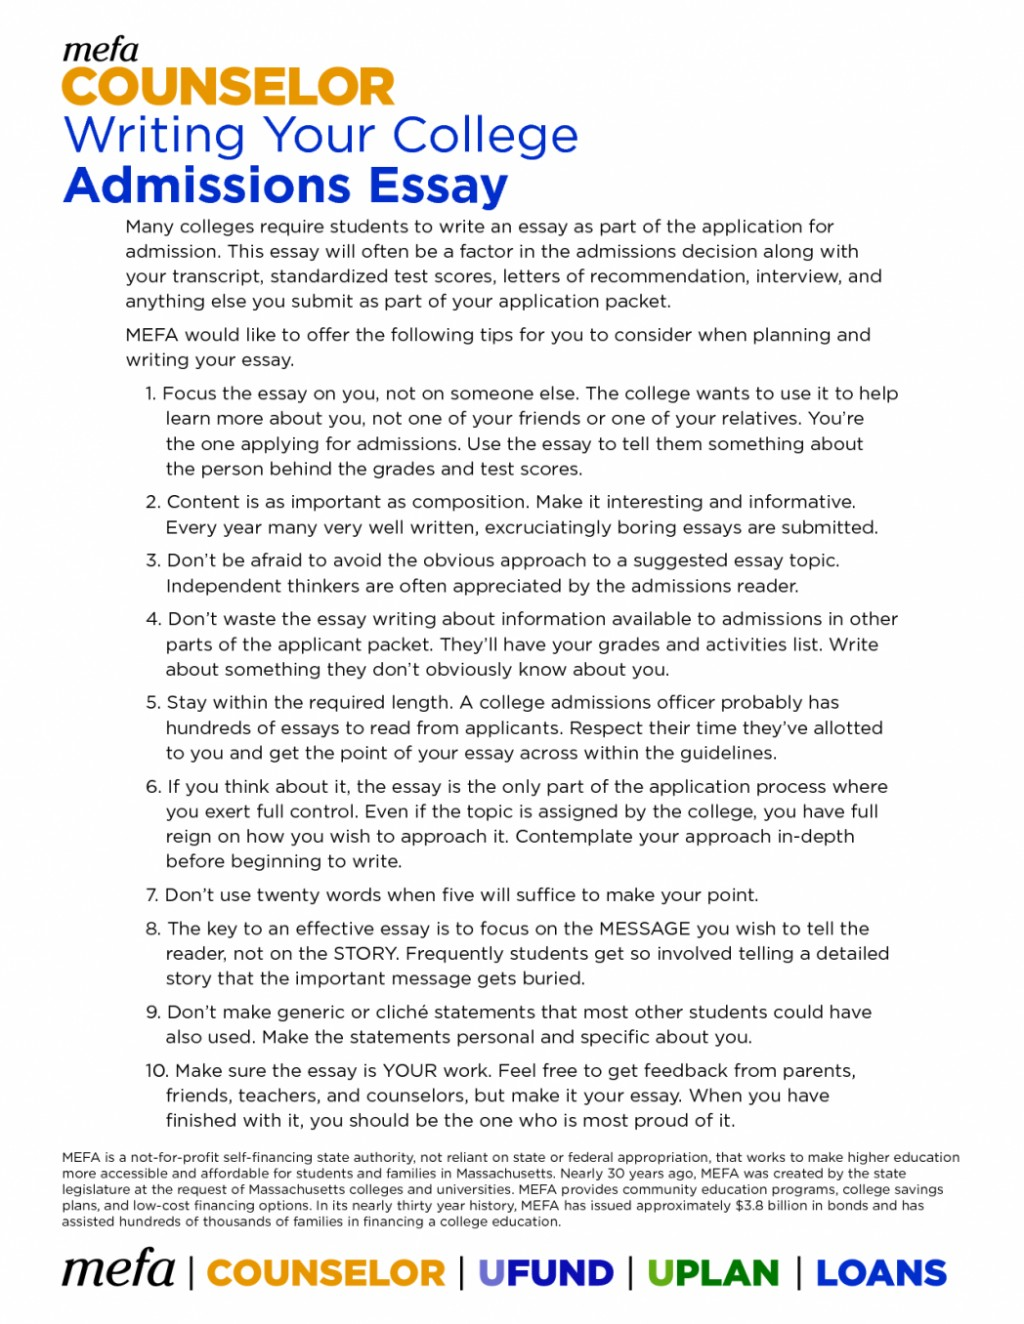 016 Essay Example College Writing Help High School How Many Paragraphs Should Application Wuaom Pages Words Long What About Formatted In Mla Format 1048x1356 Are An Unforgettable Argumentative There Large